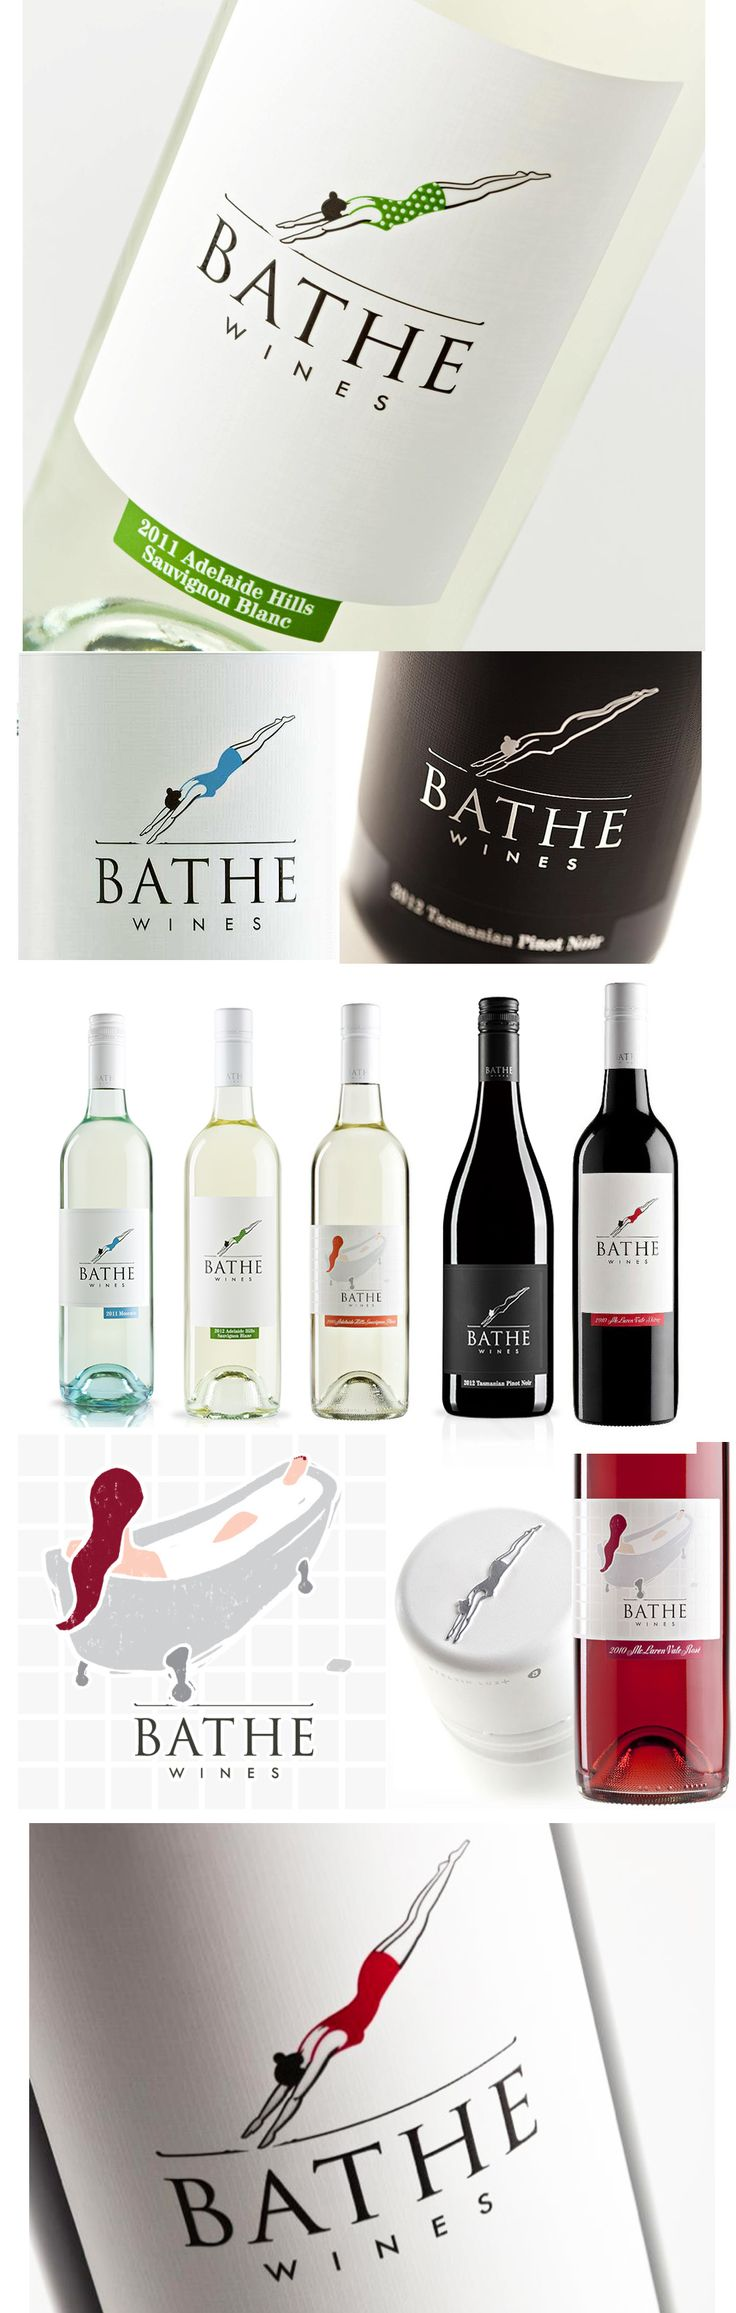 Bathe Wines Labels from over the years. From in a tub, to diving in a swimsuit to diving naked. Designed by Fuller.